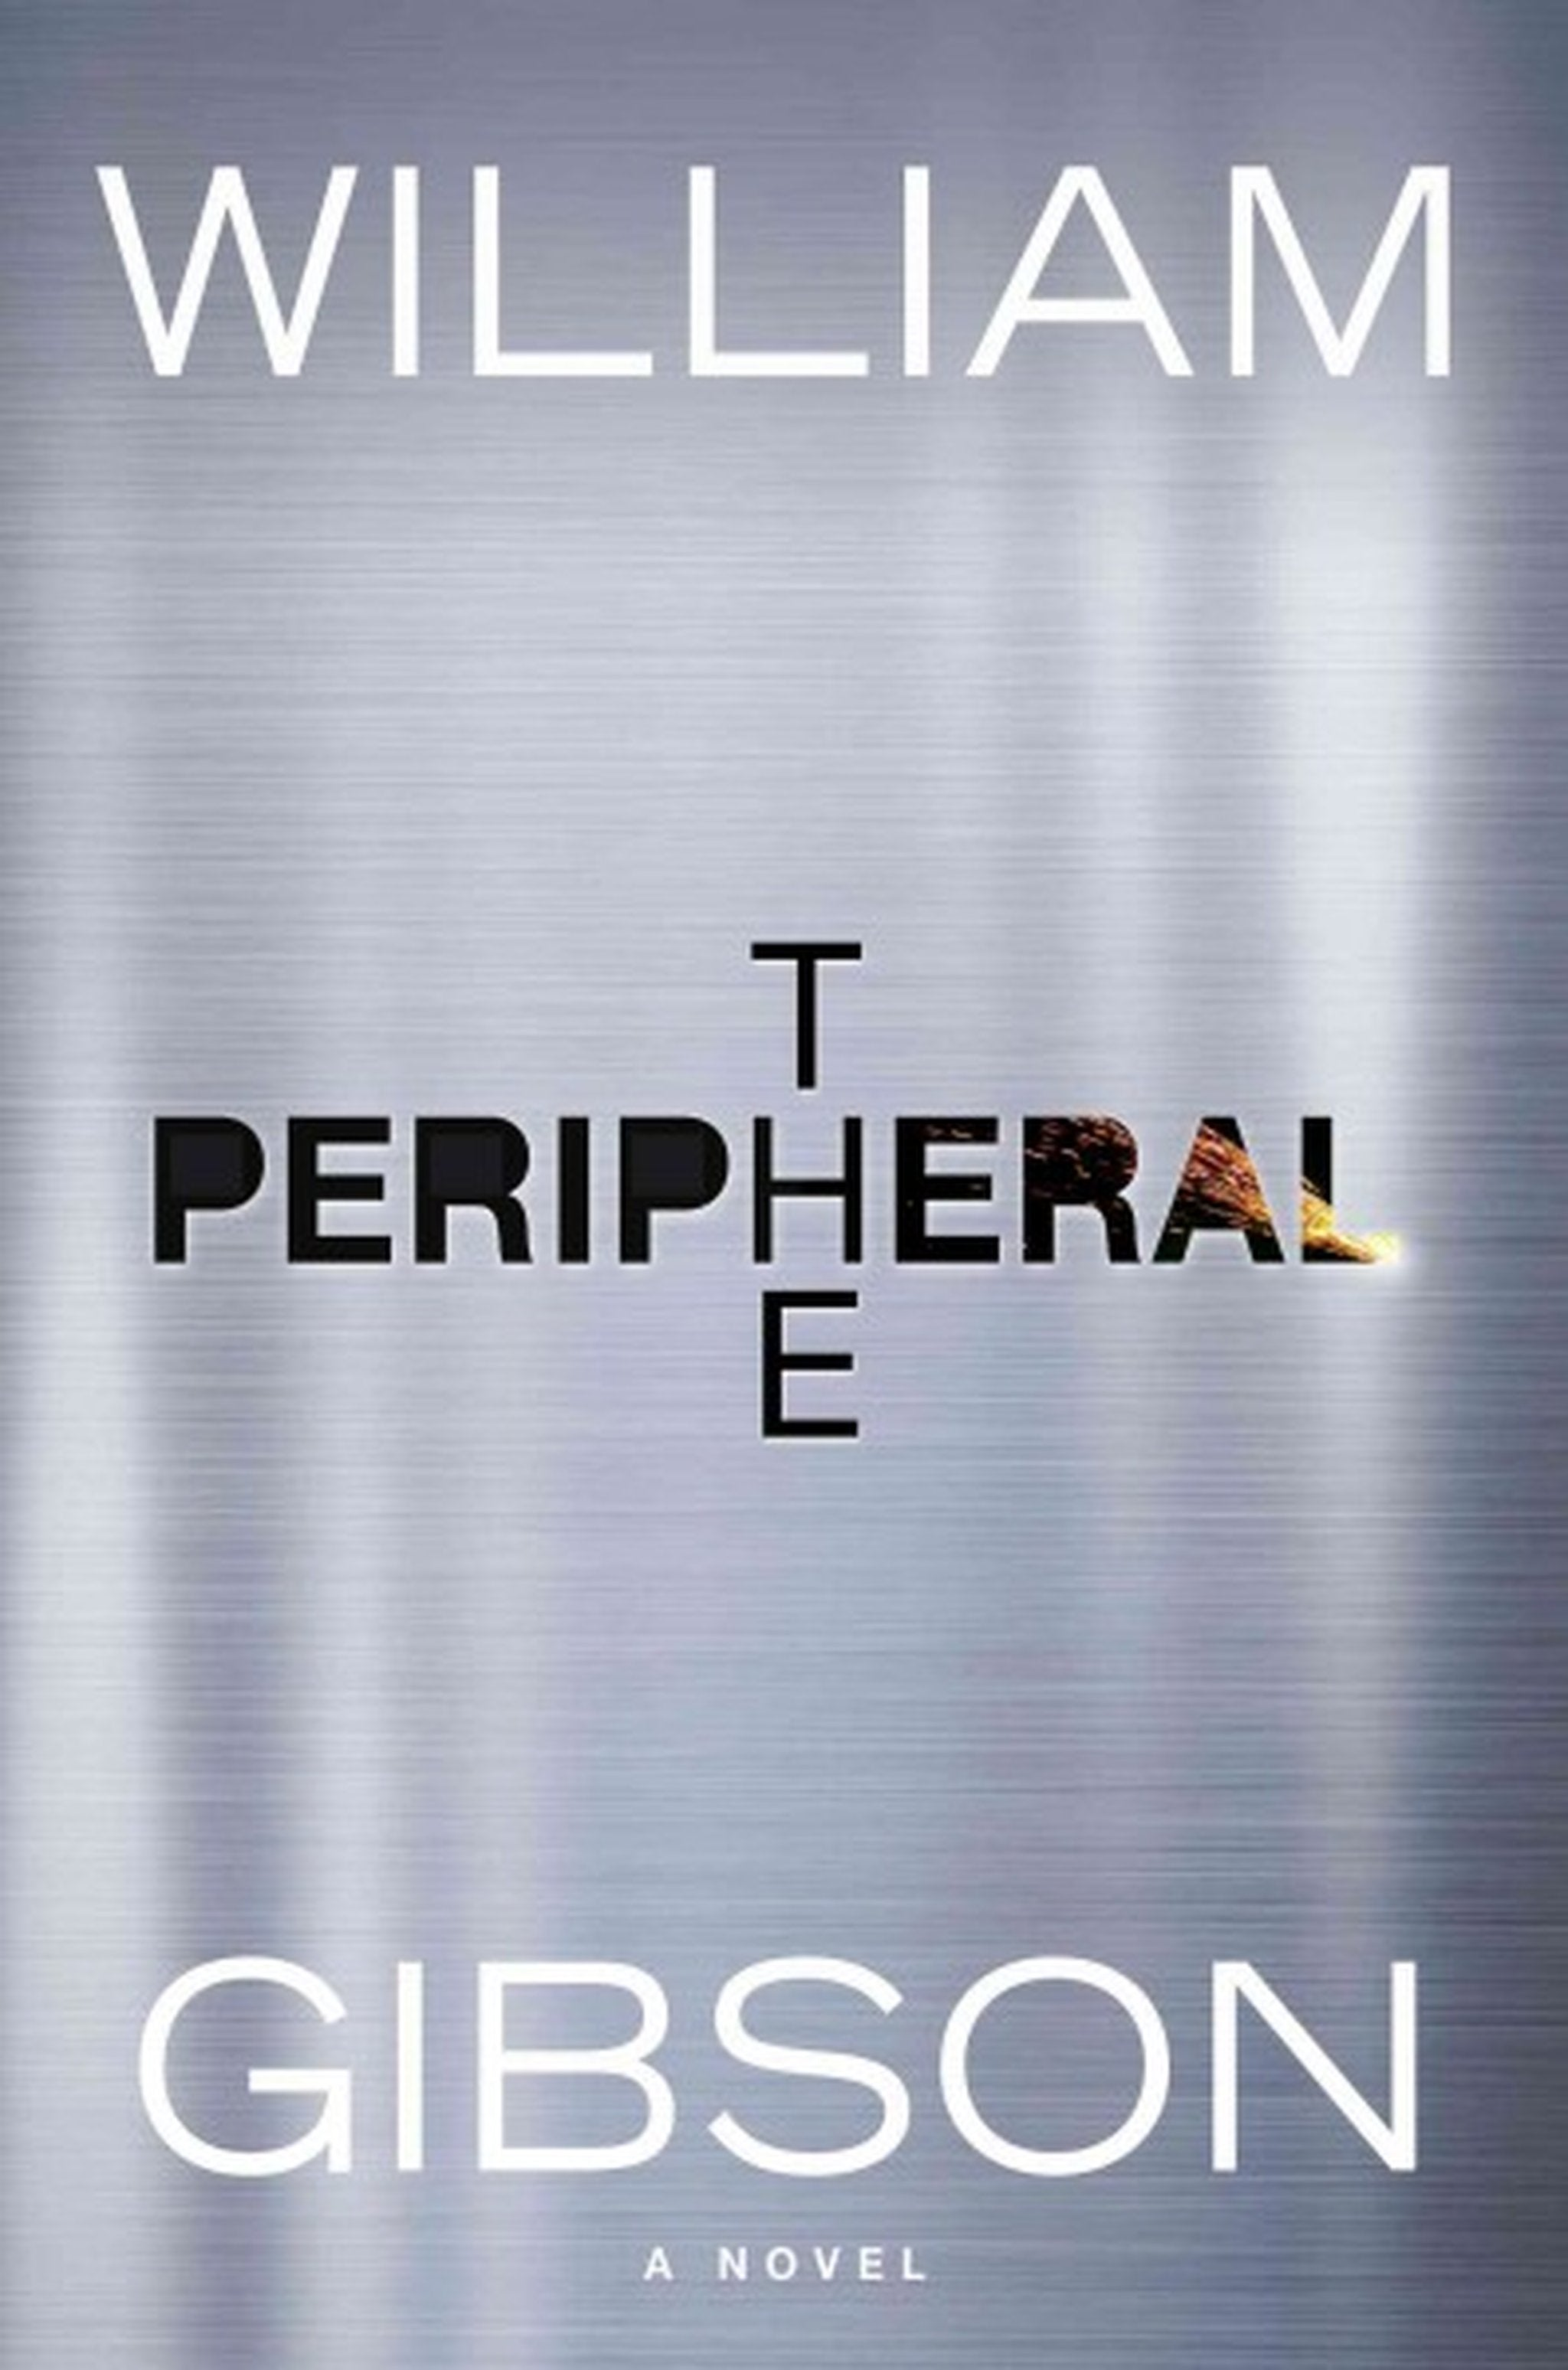 Spoiler Space: More from William Gibson about The Peripheral